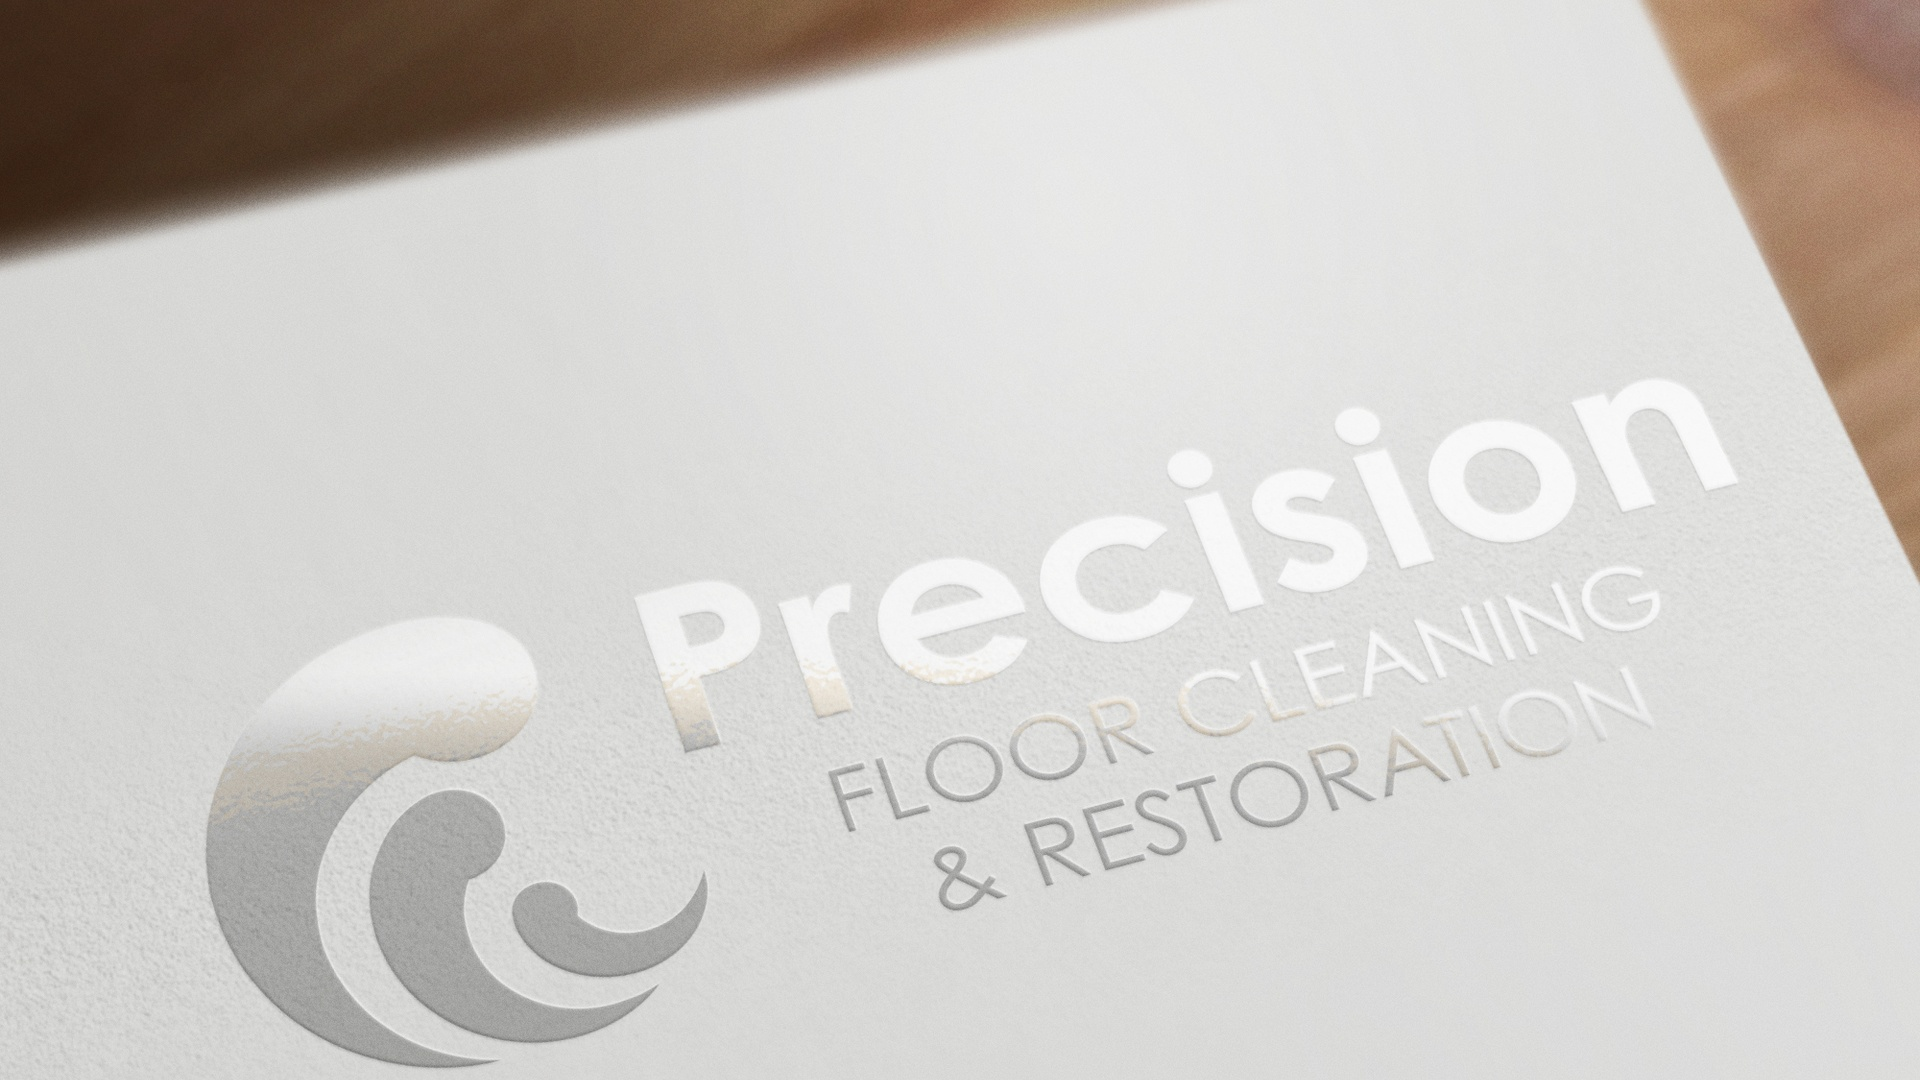 Precision Floor Cleaning & Restoration